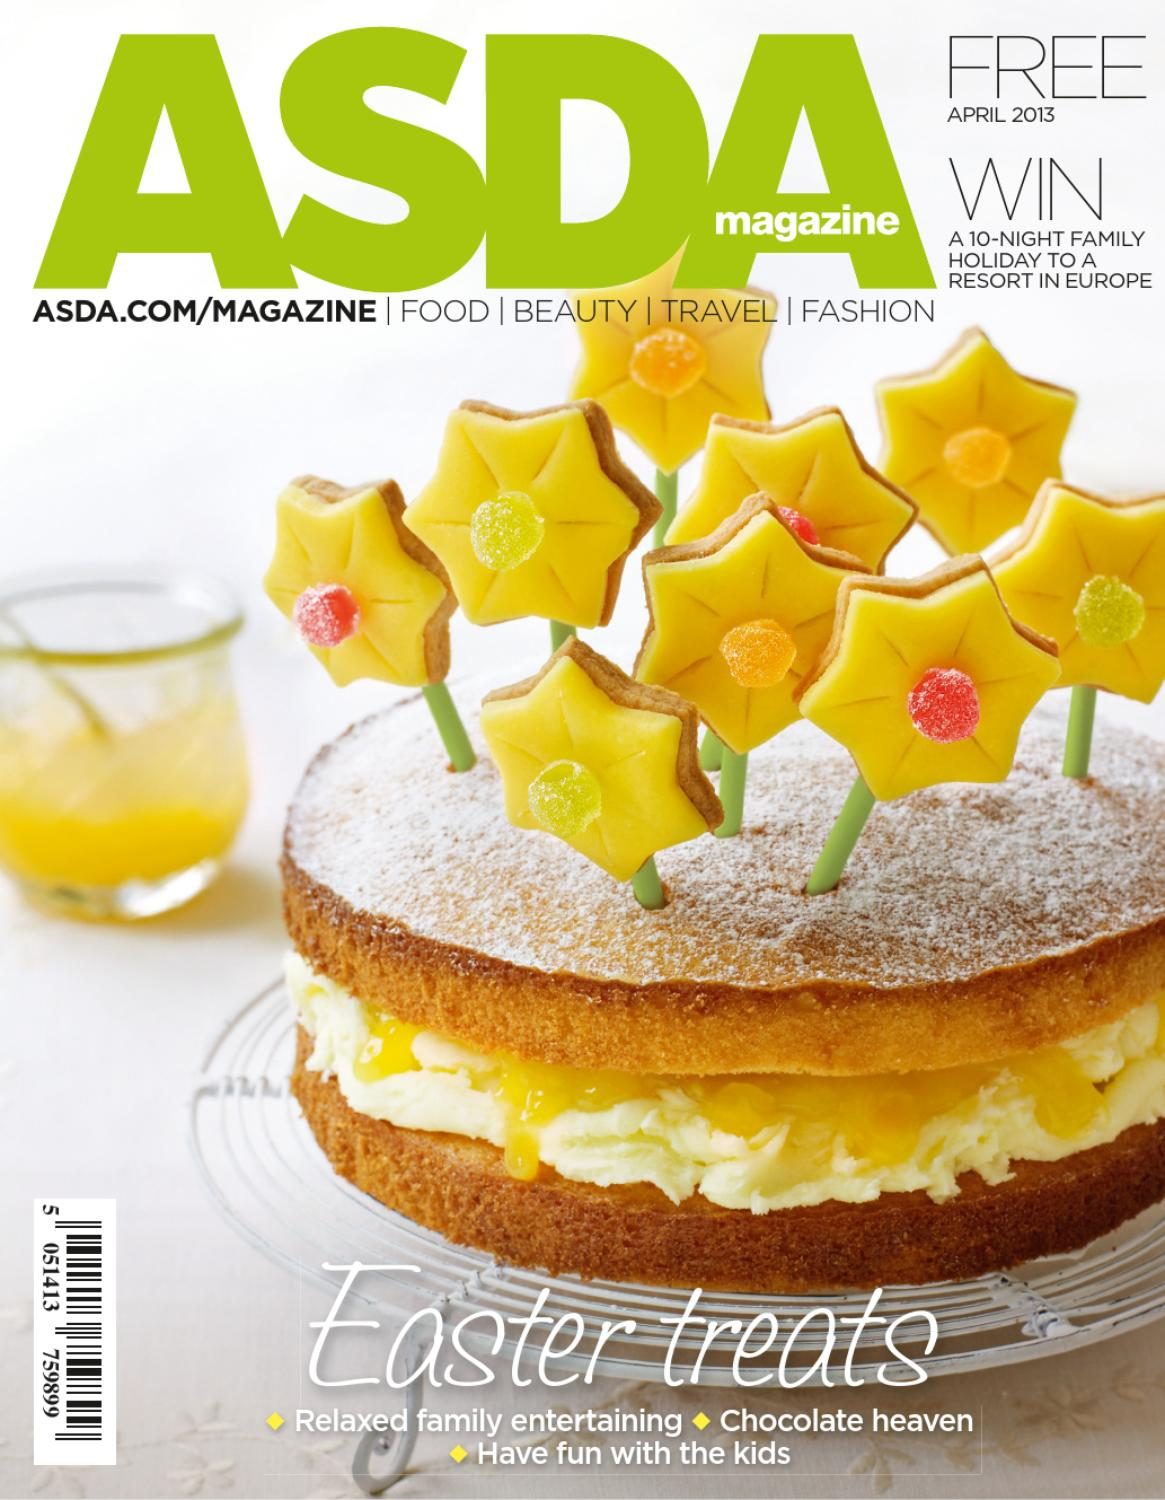 Asda magazine april 2013 by asda issuu negle Choice Image